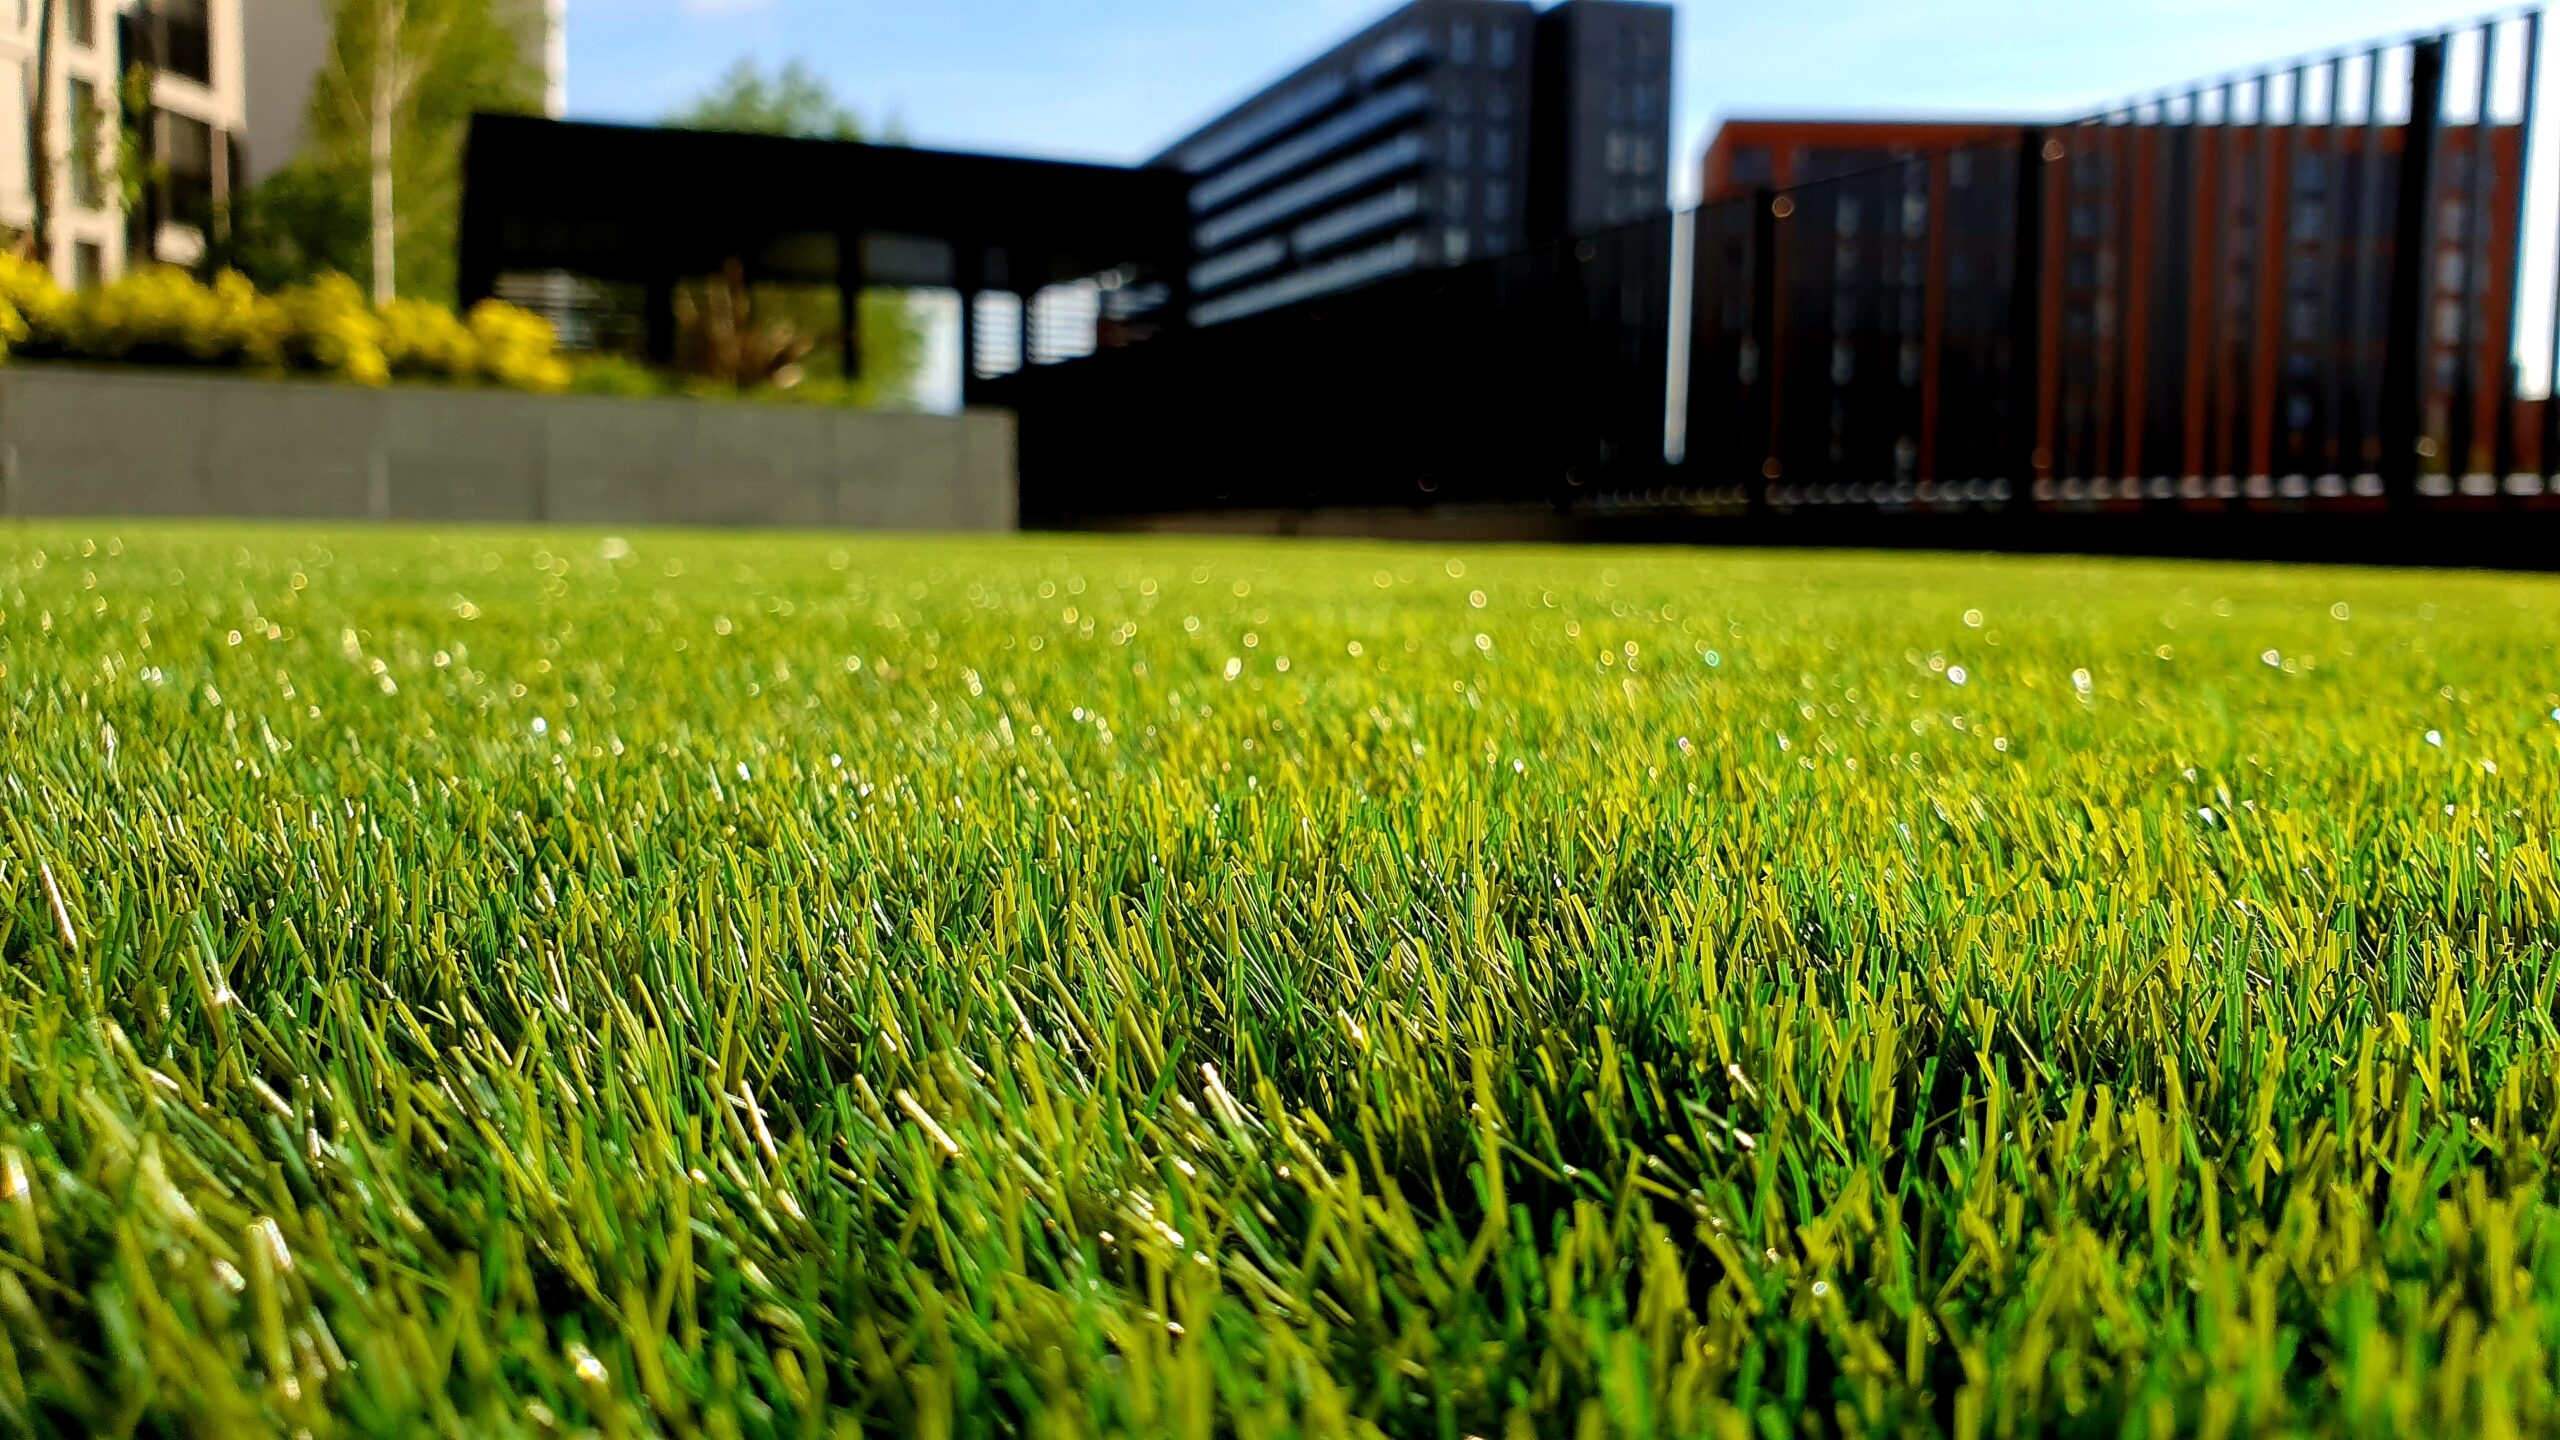 Landscaping: How to Aerate Your Lawn